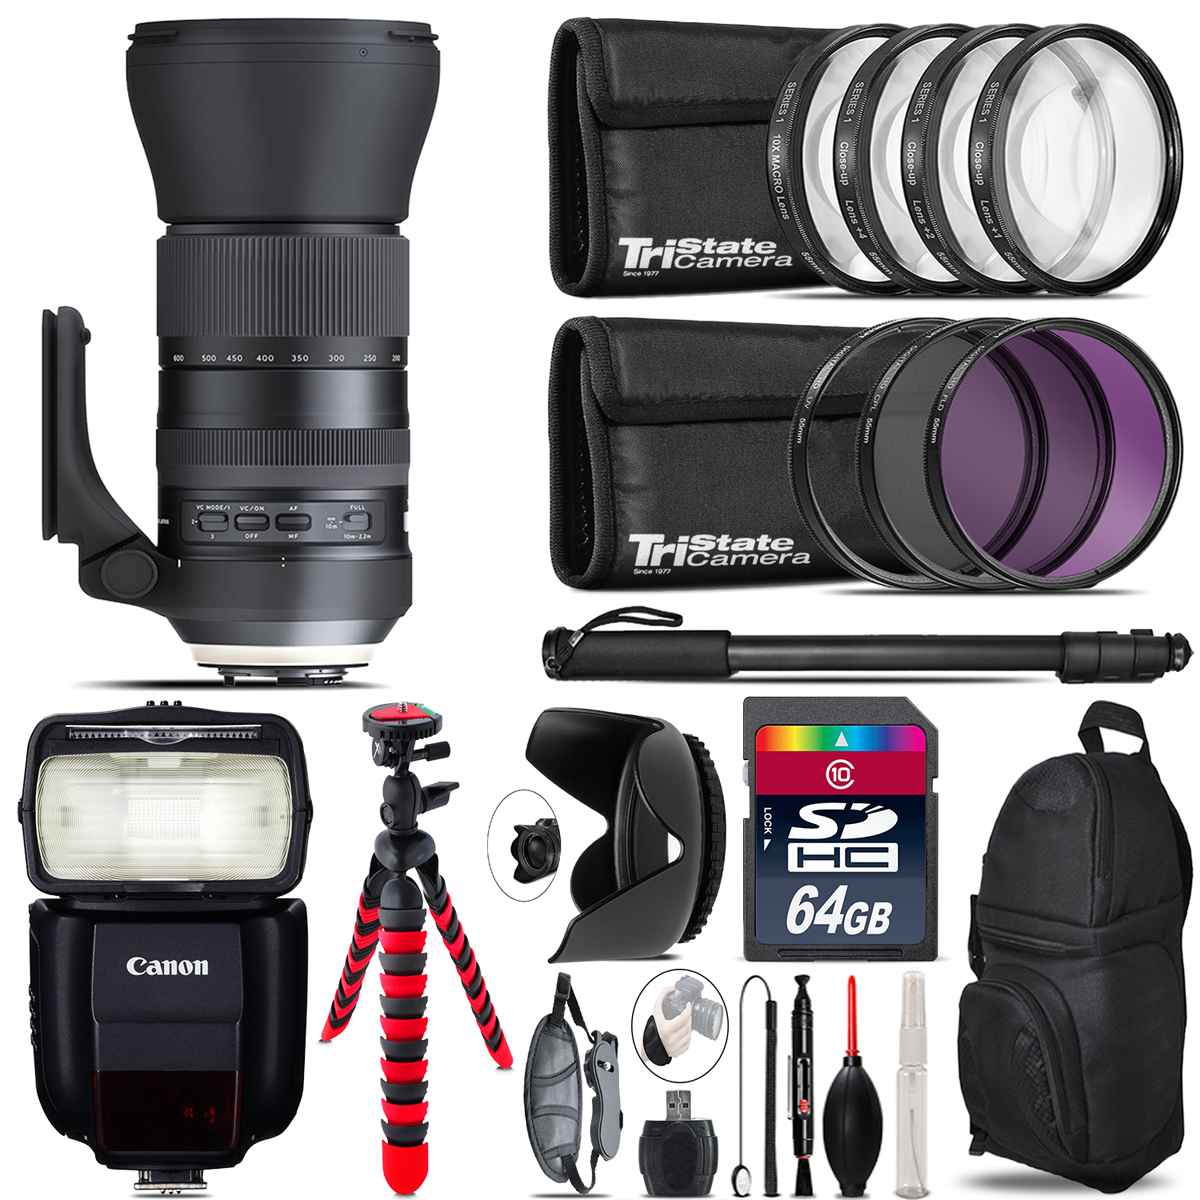 Tamron 150-600mm G2 for Canon + Speedlite 430EX III-RT & More - 64GB Kit *FREE SHIPPING*